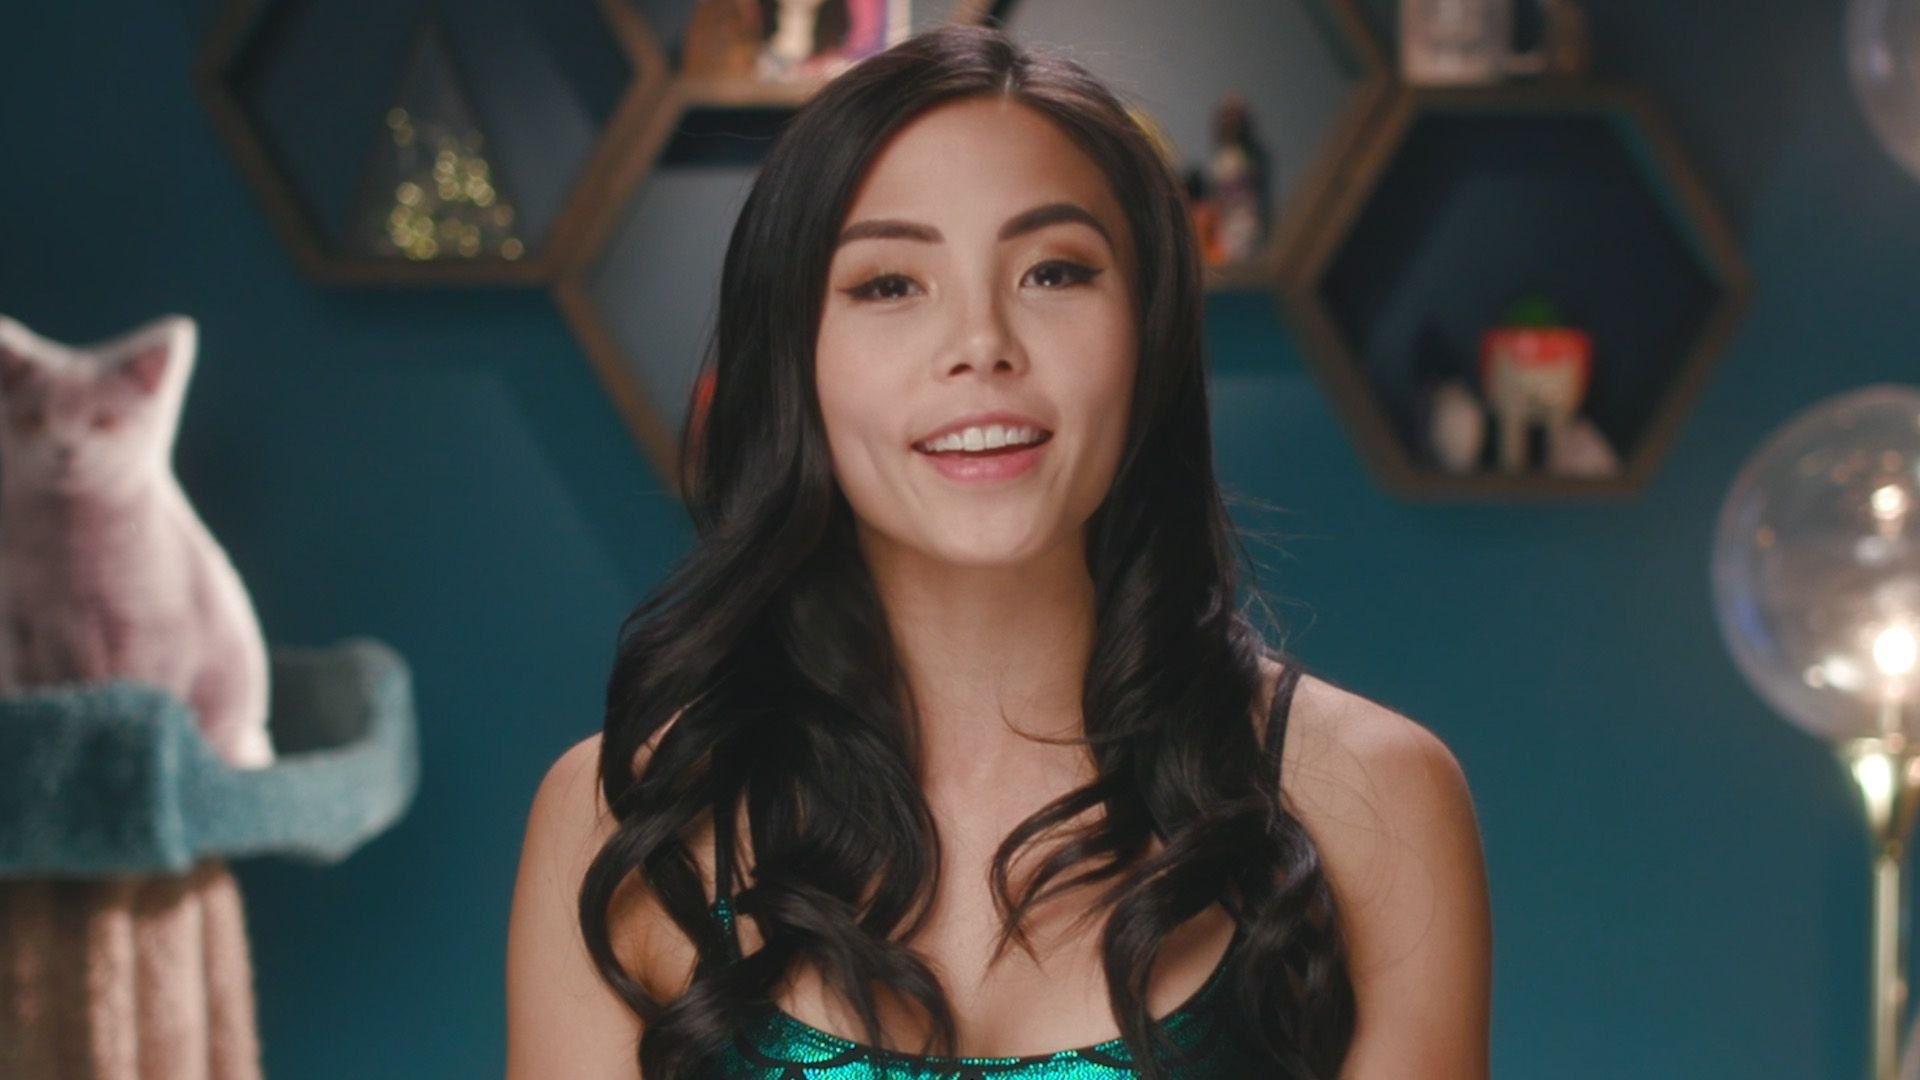 Anna Akana encourages people to talk about mental health without telling them how to go about it. (Image via Dailymotion)